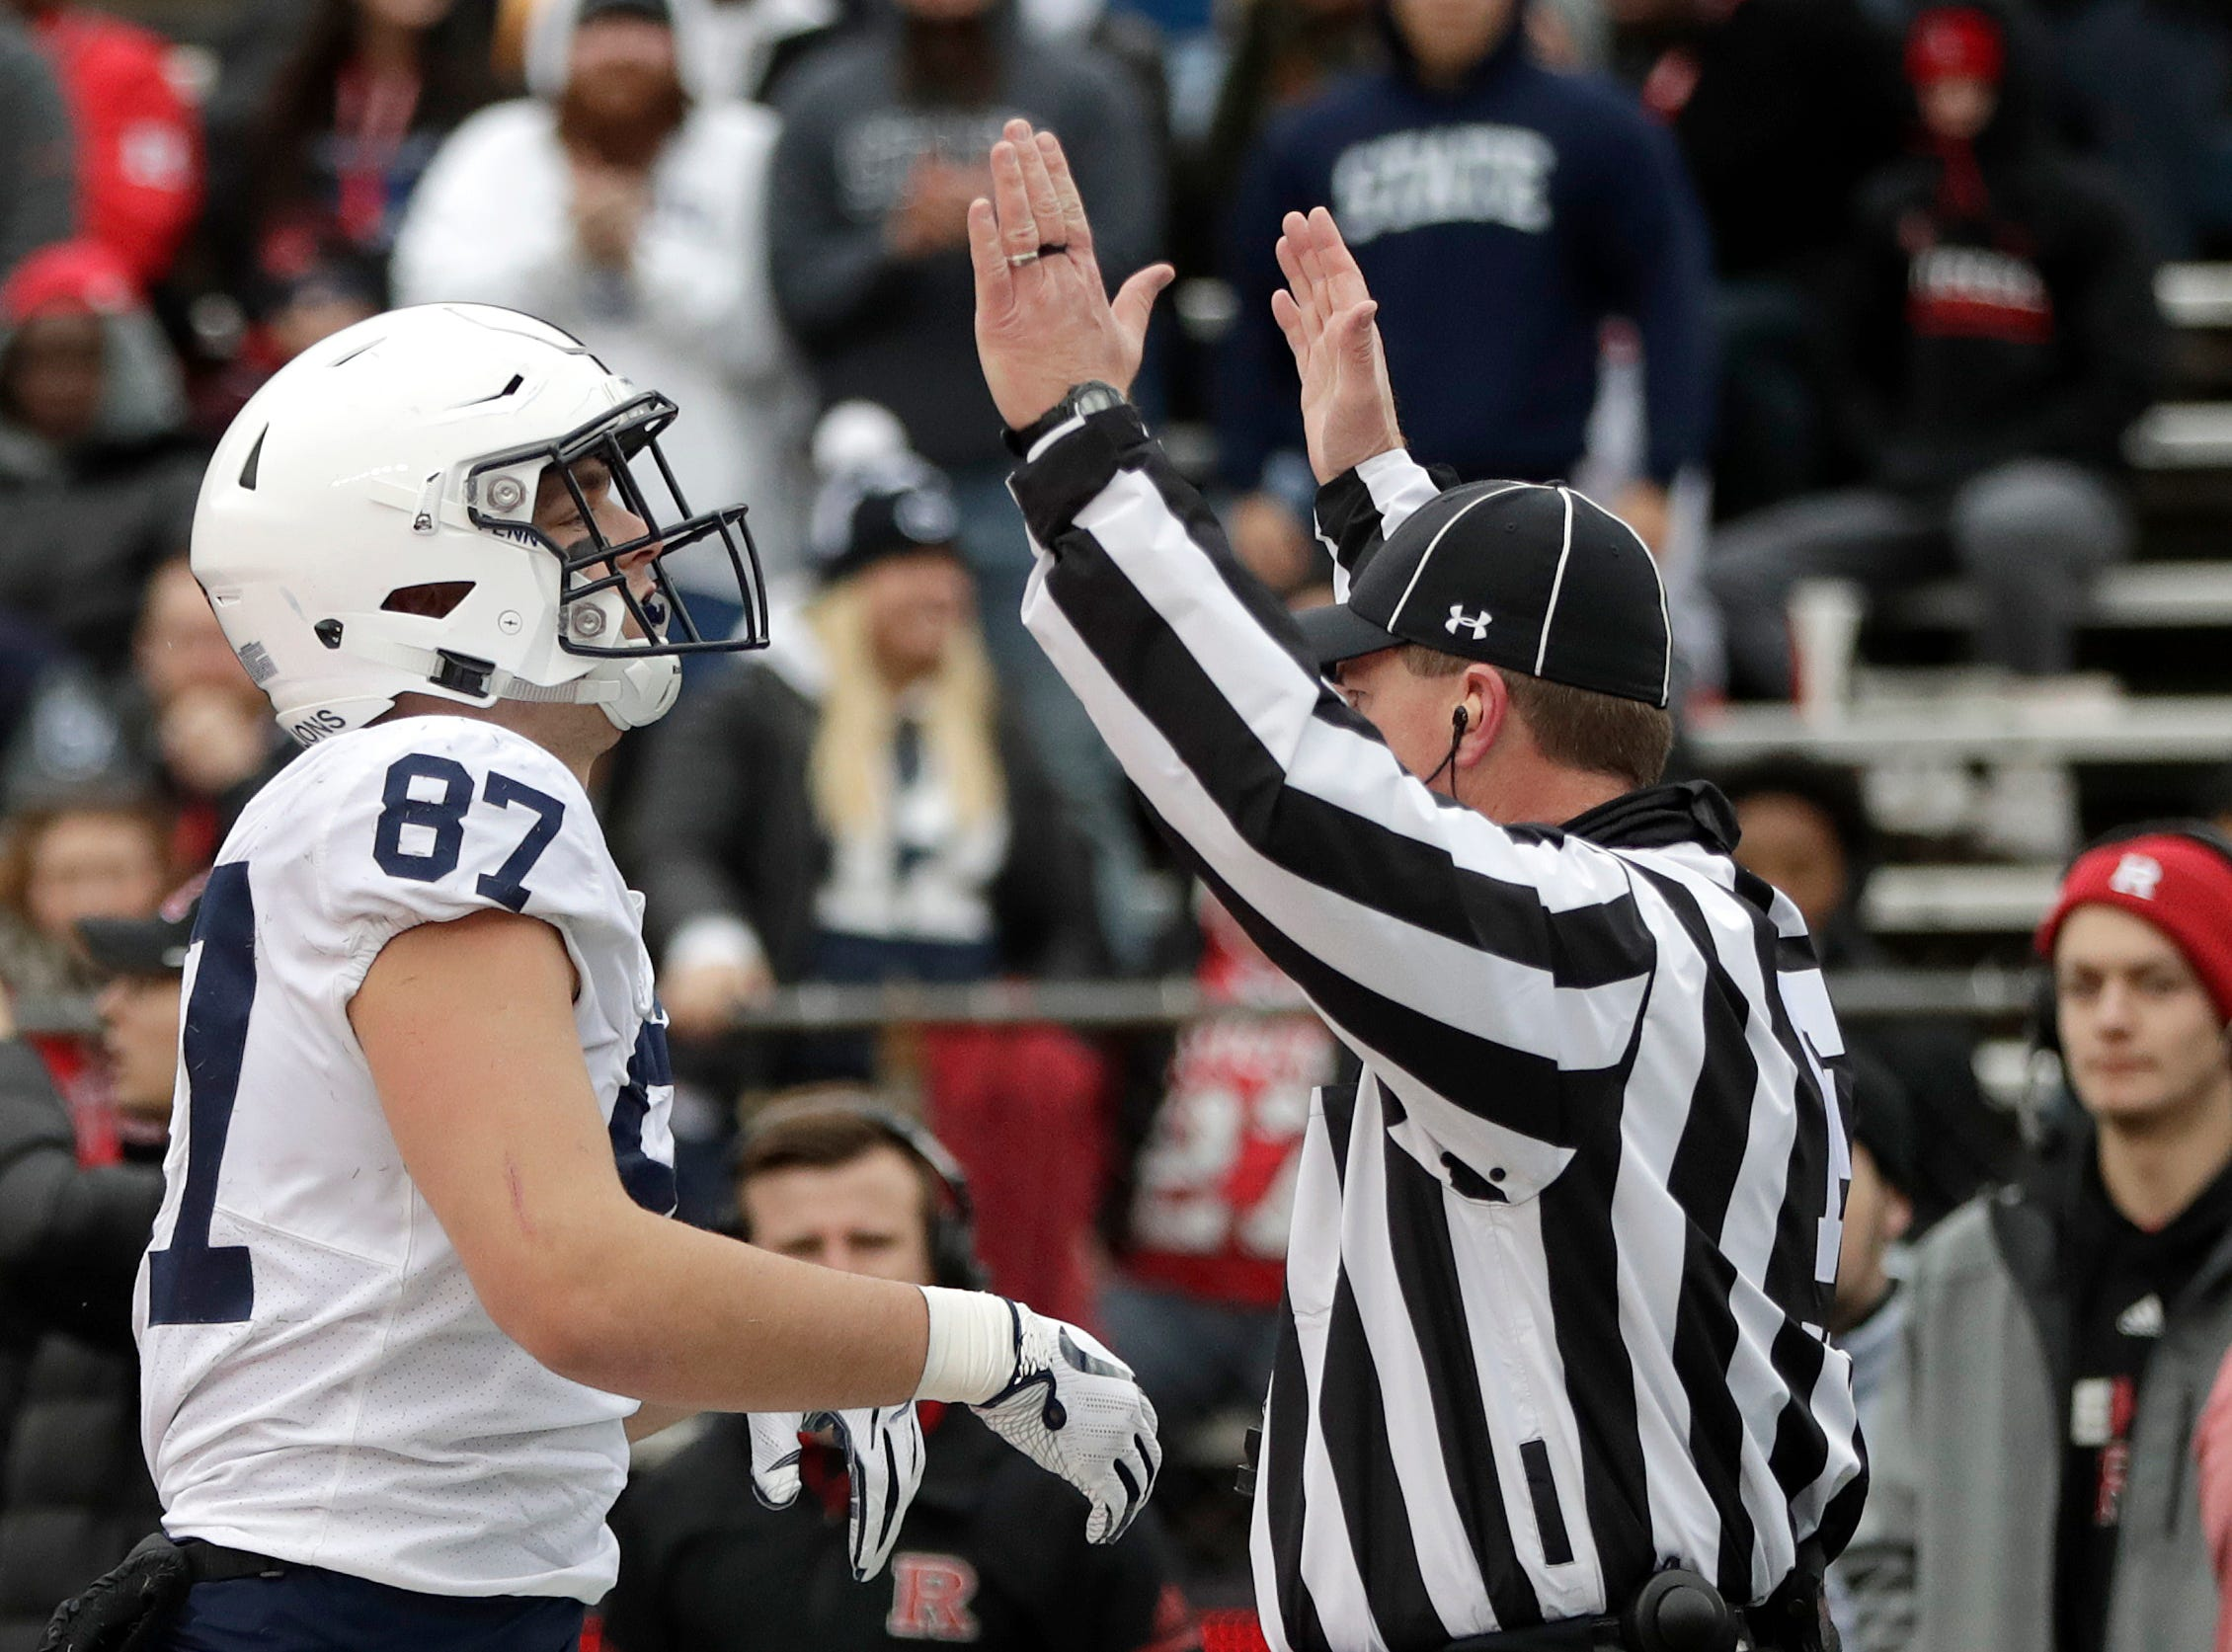 An official gestures touchdown after Penn State tight end Pat Freiermuth (87) caught a scoring pass from quarterback Trace McSorley, not pictured, during the first half of an NCAA college football game against Rutgers, Saturday, Nov. 17, 2018, in Piscataway, N.J. (AP Photo/Julio Cortez)